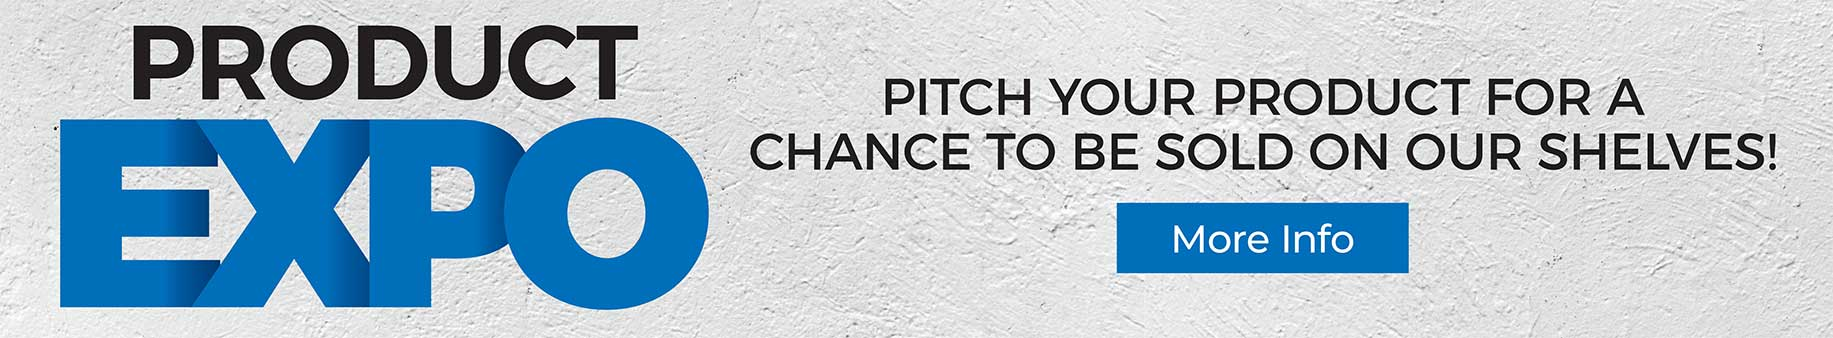 Product Expo - Pitch your product for a chance to be sold on our shelves!